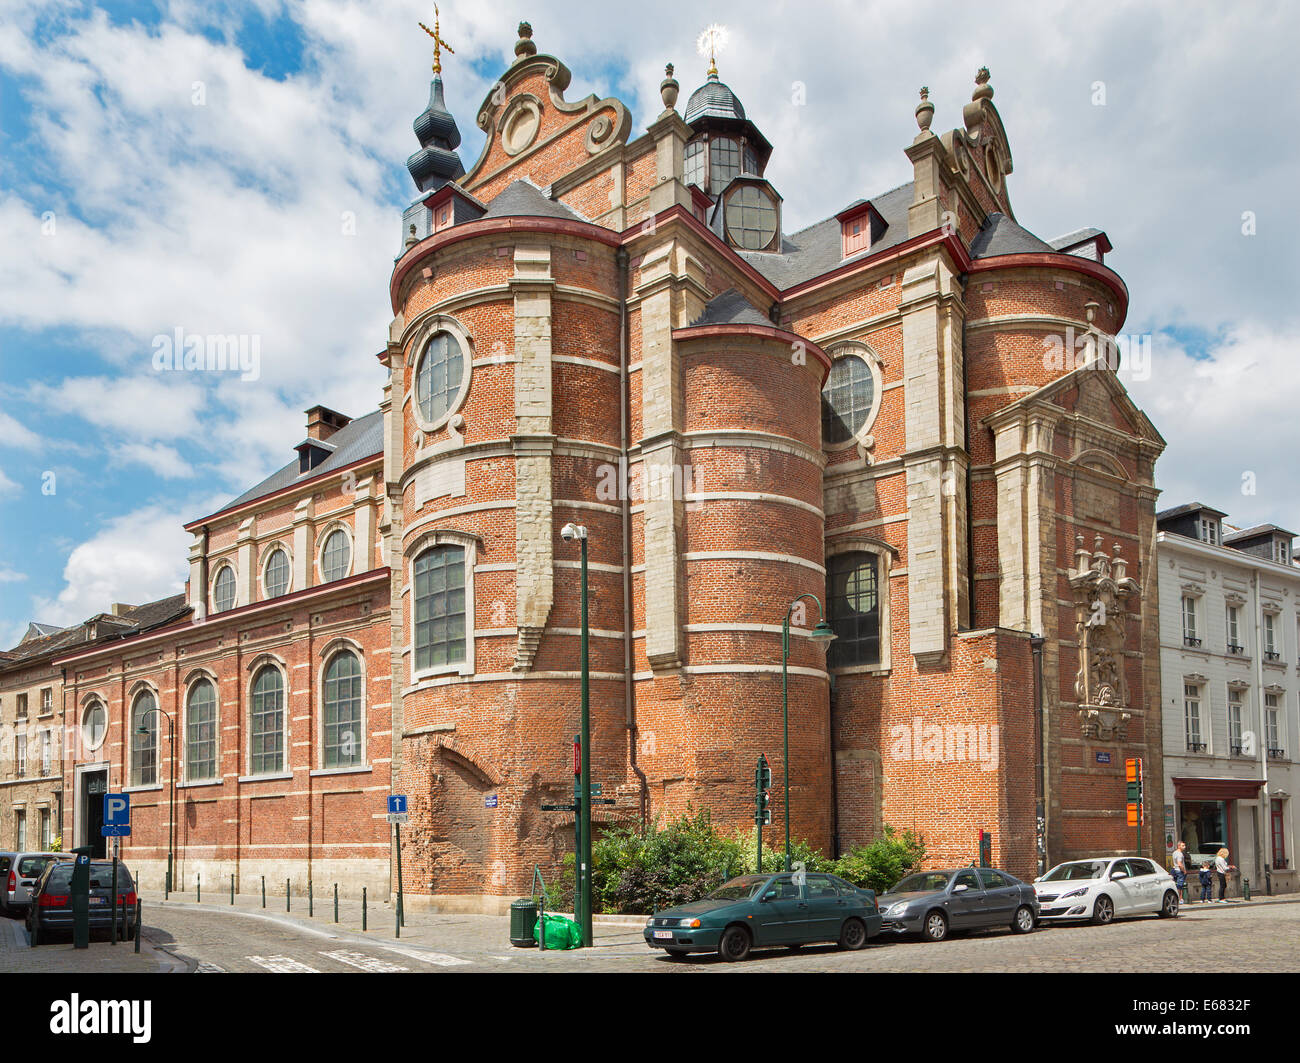 BRUSSELS, BELGIUM - JUNE 15, 2014: The church Notre Dame aux Riches Claires. - Stock Image